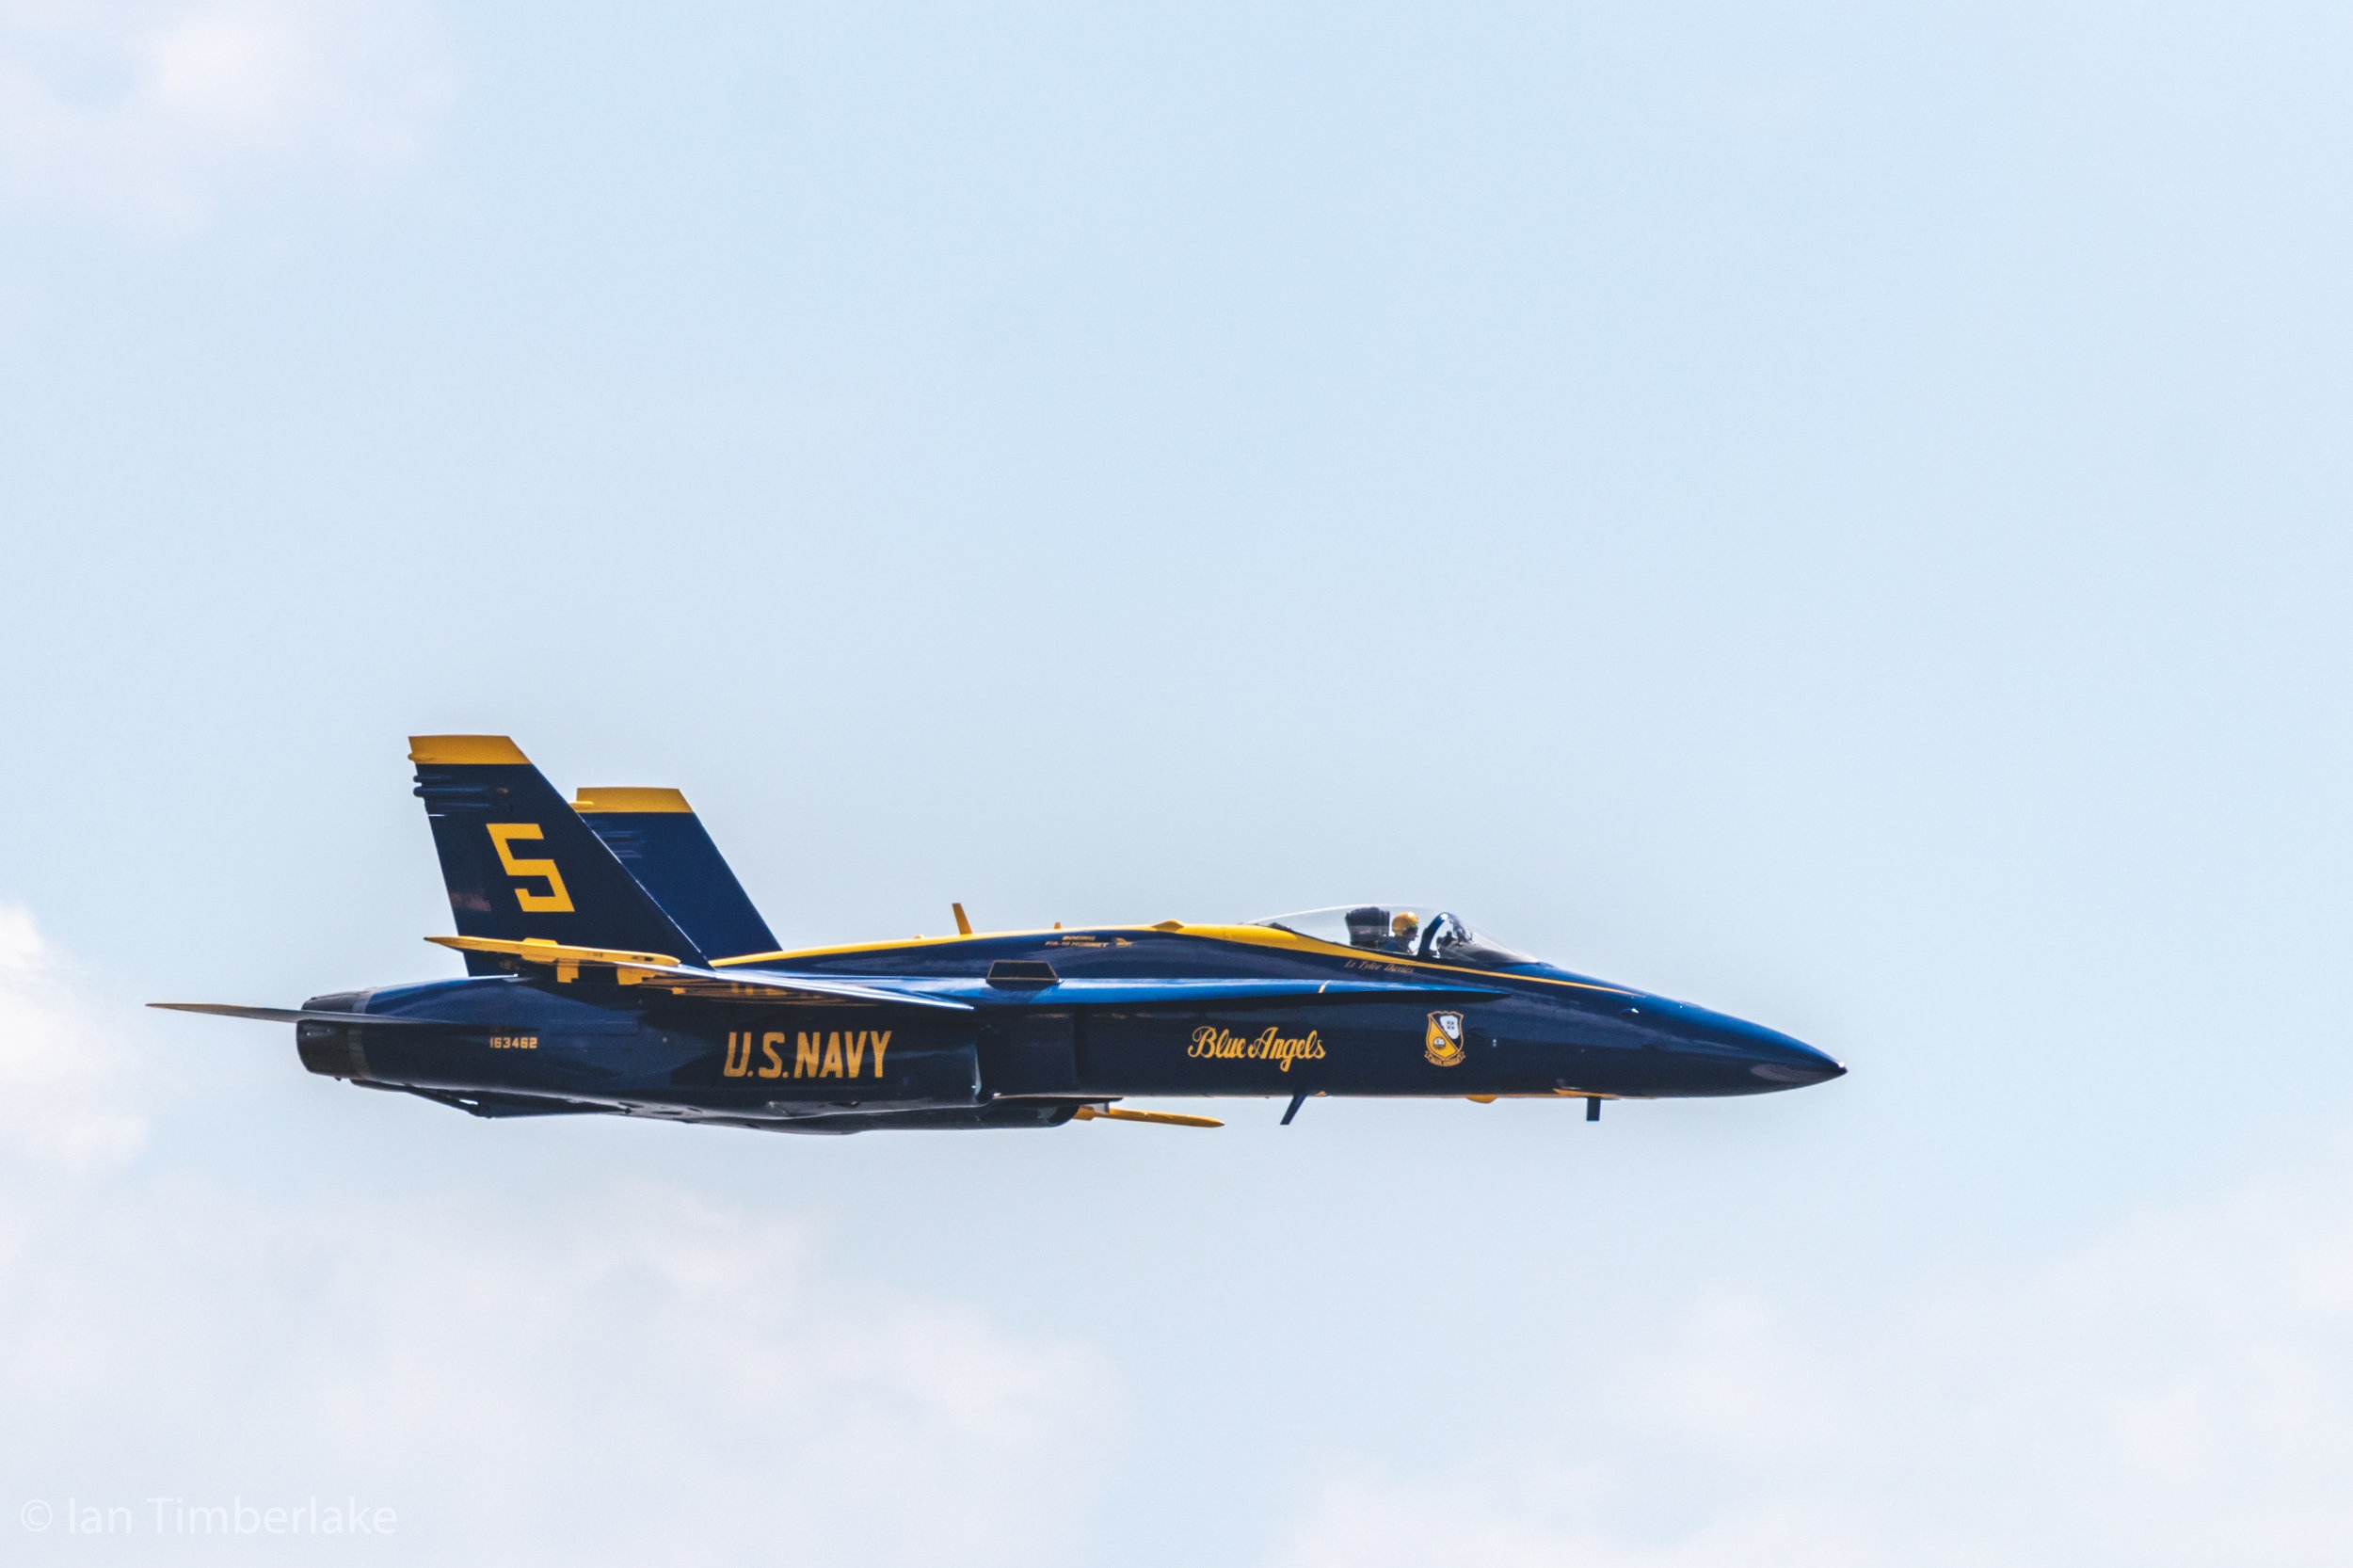 United States Navy Blue Angel #5, piloted by Navy Lieutenant Tyler Davies at the United States Naval Academy in Annapolis, Maryland. Yes, this was shot from the ground. Taken at 400mm, 1/2500th sec, f/5.6, ISO 125.